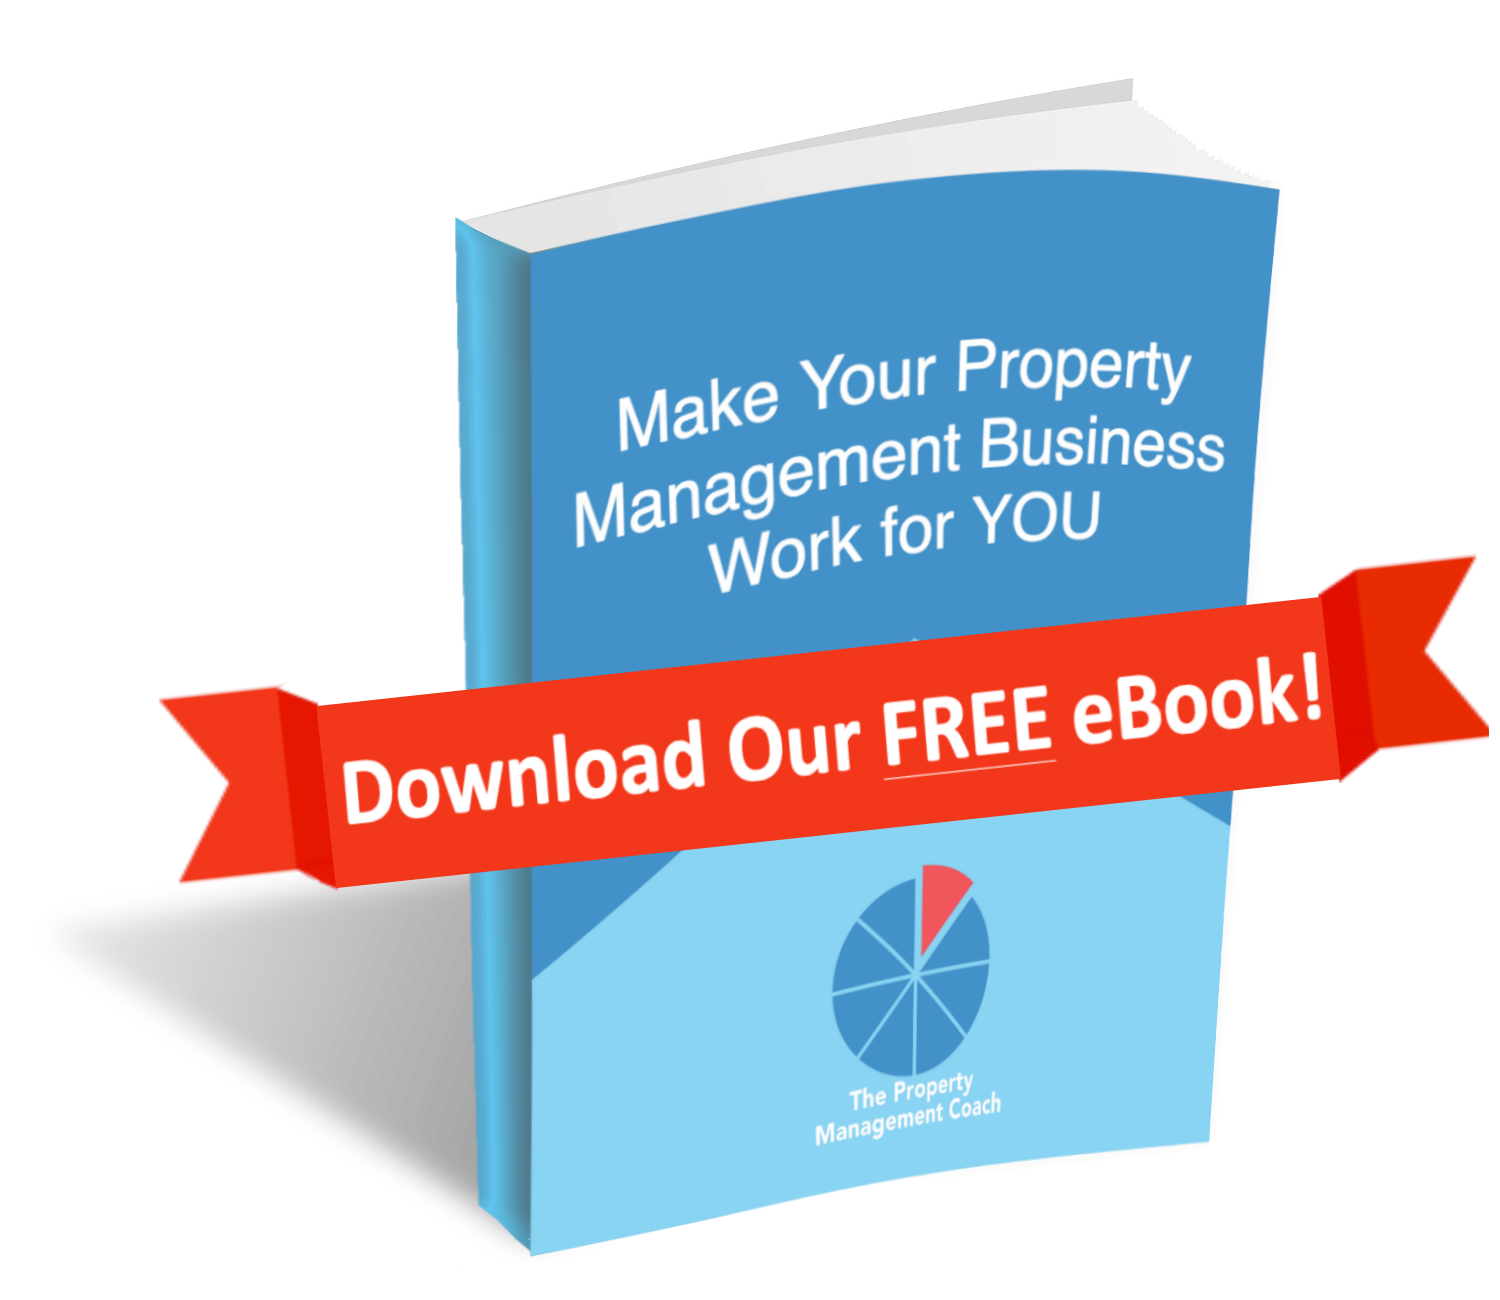 downloadfreeebook